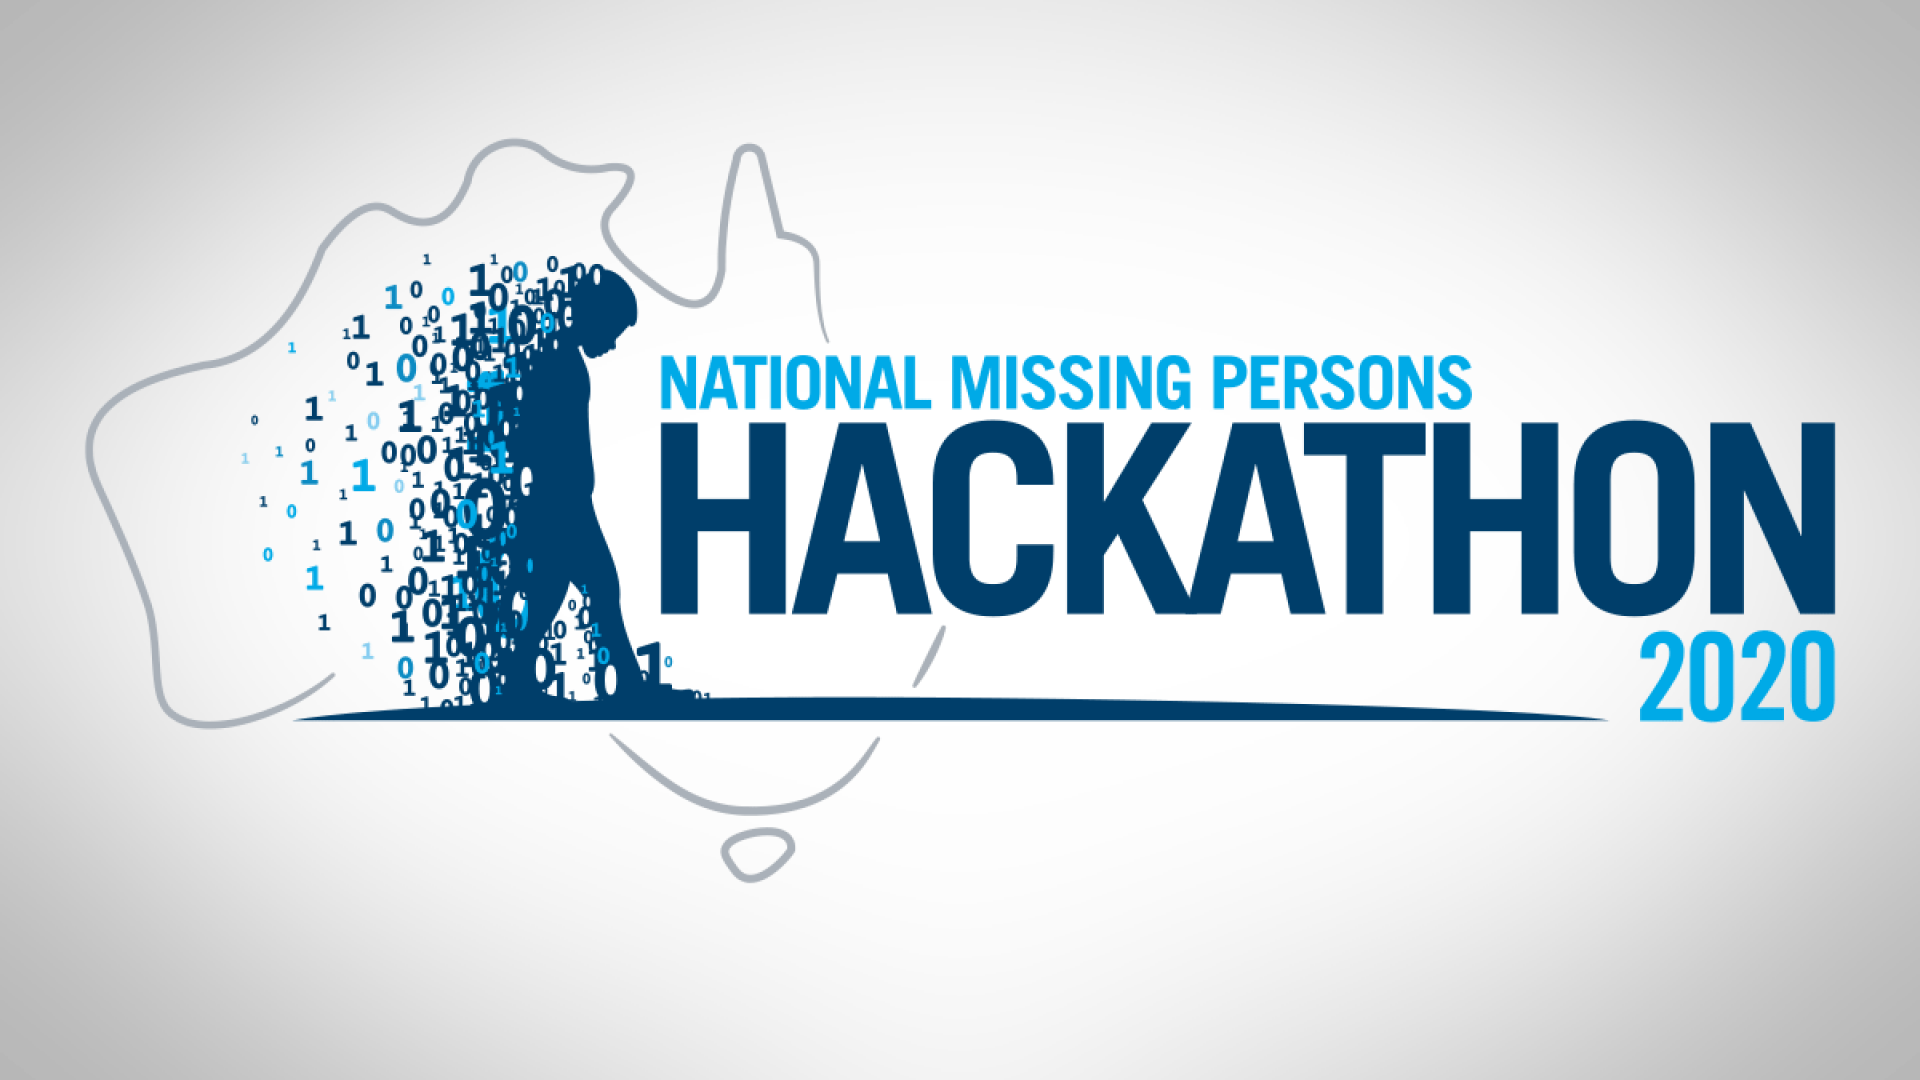 National Missing Persons Hackathon